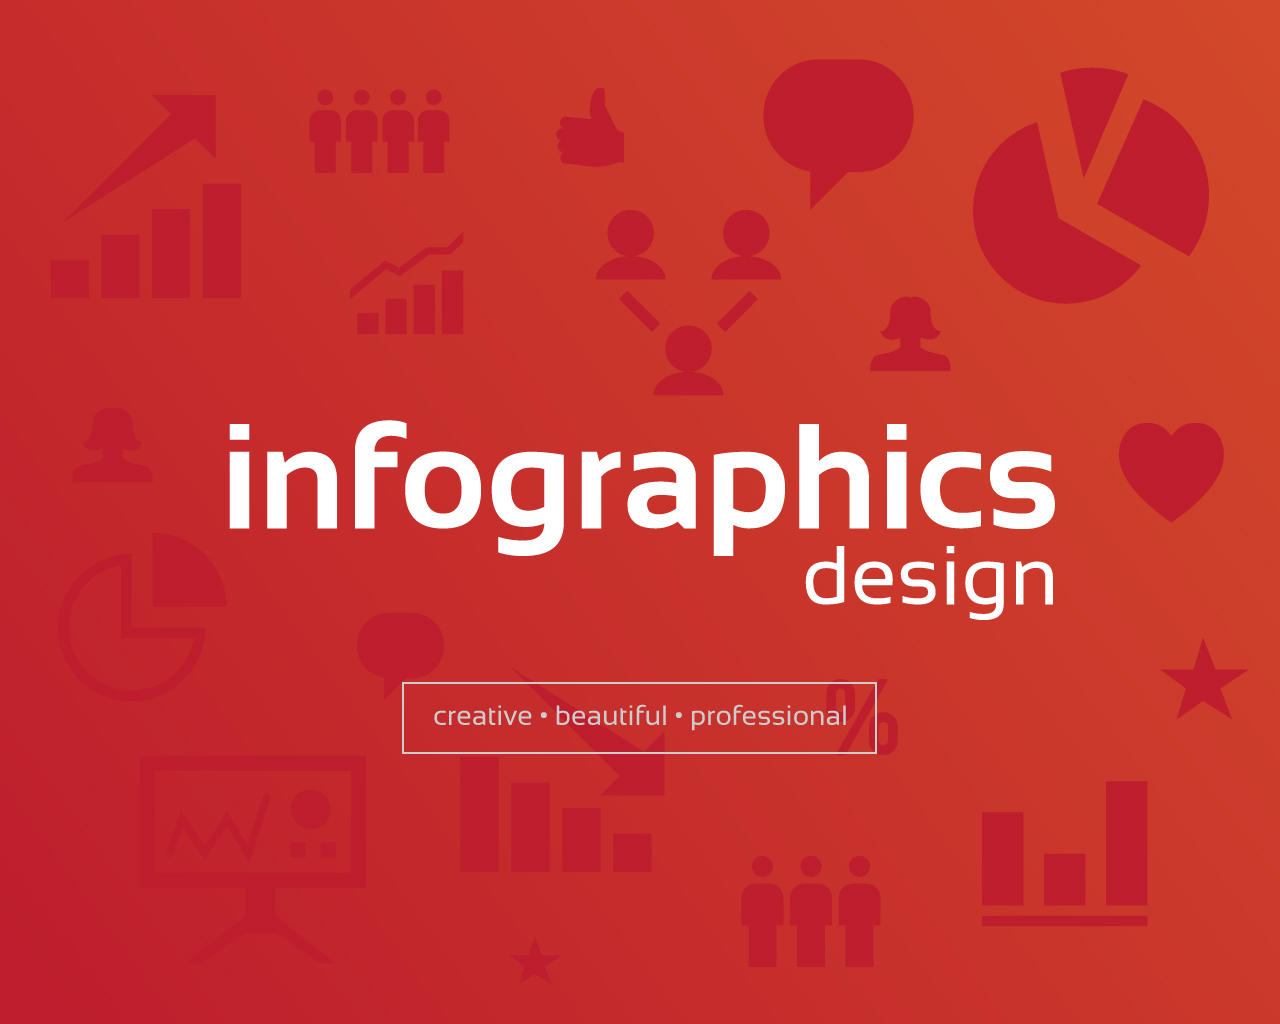 Clean Creative Infographics Design by ProjectileStudio - 70557